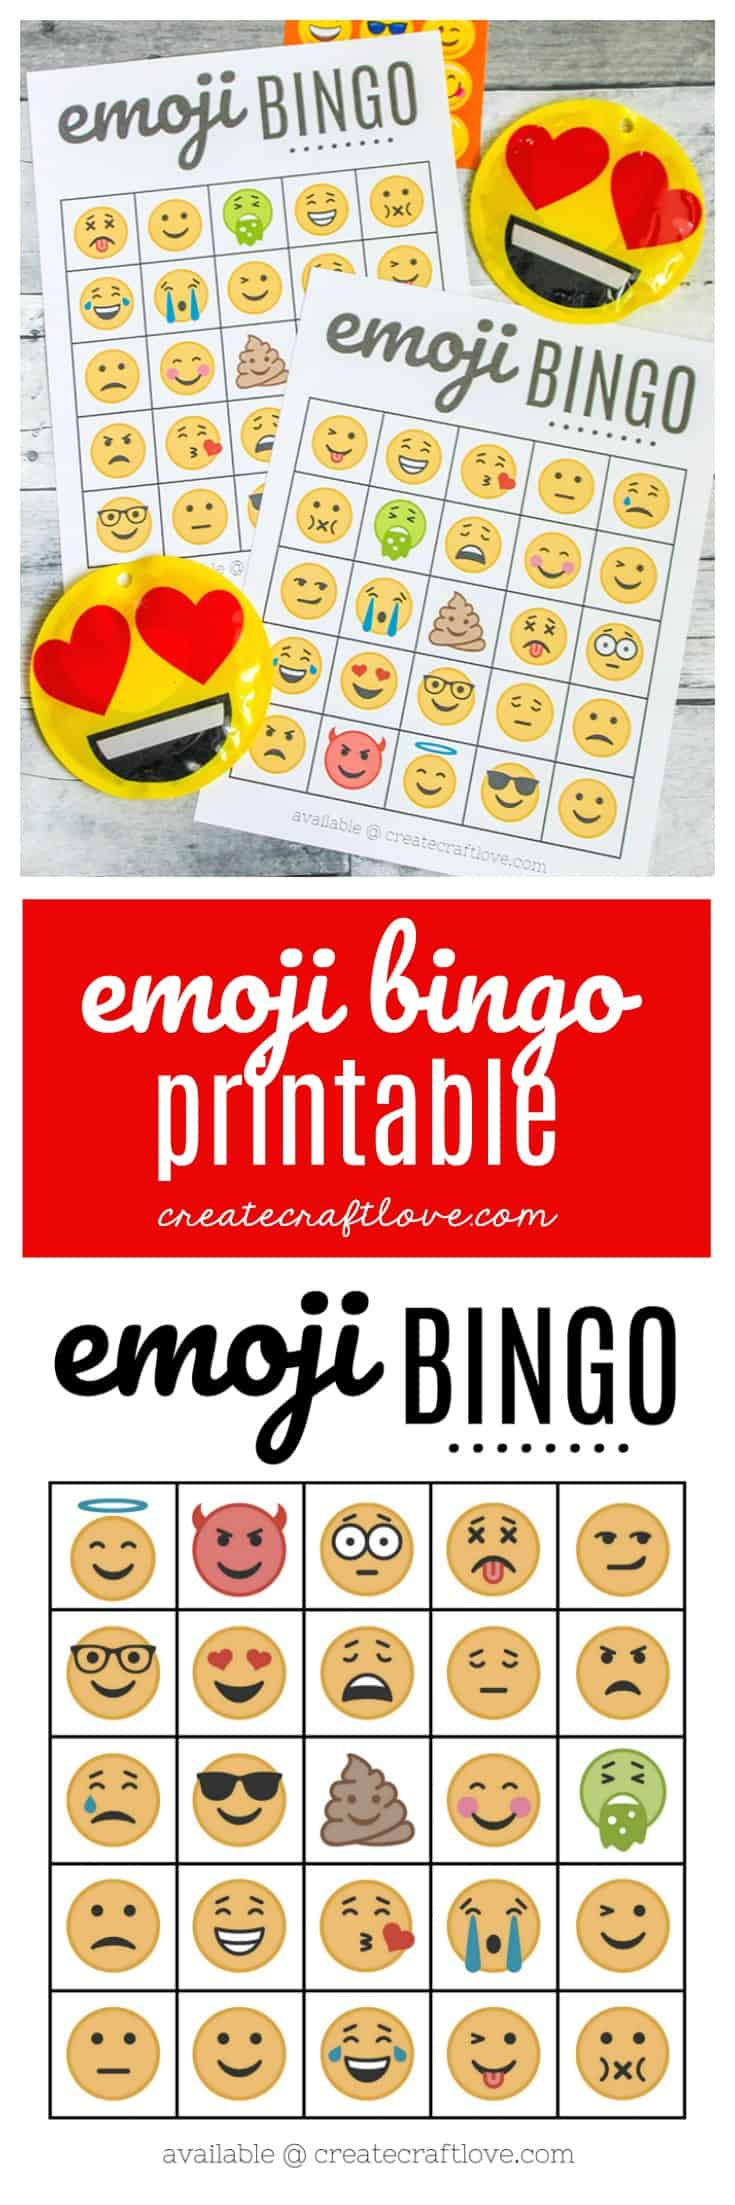 photograph relating to Emoji Feelings Printable called Free of charge Emoji Bingo Printable - Acquire Craft Enjoy